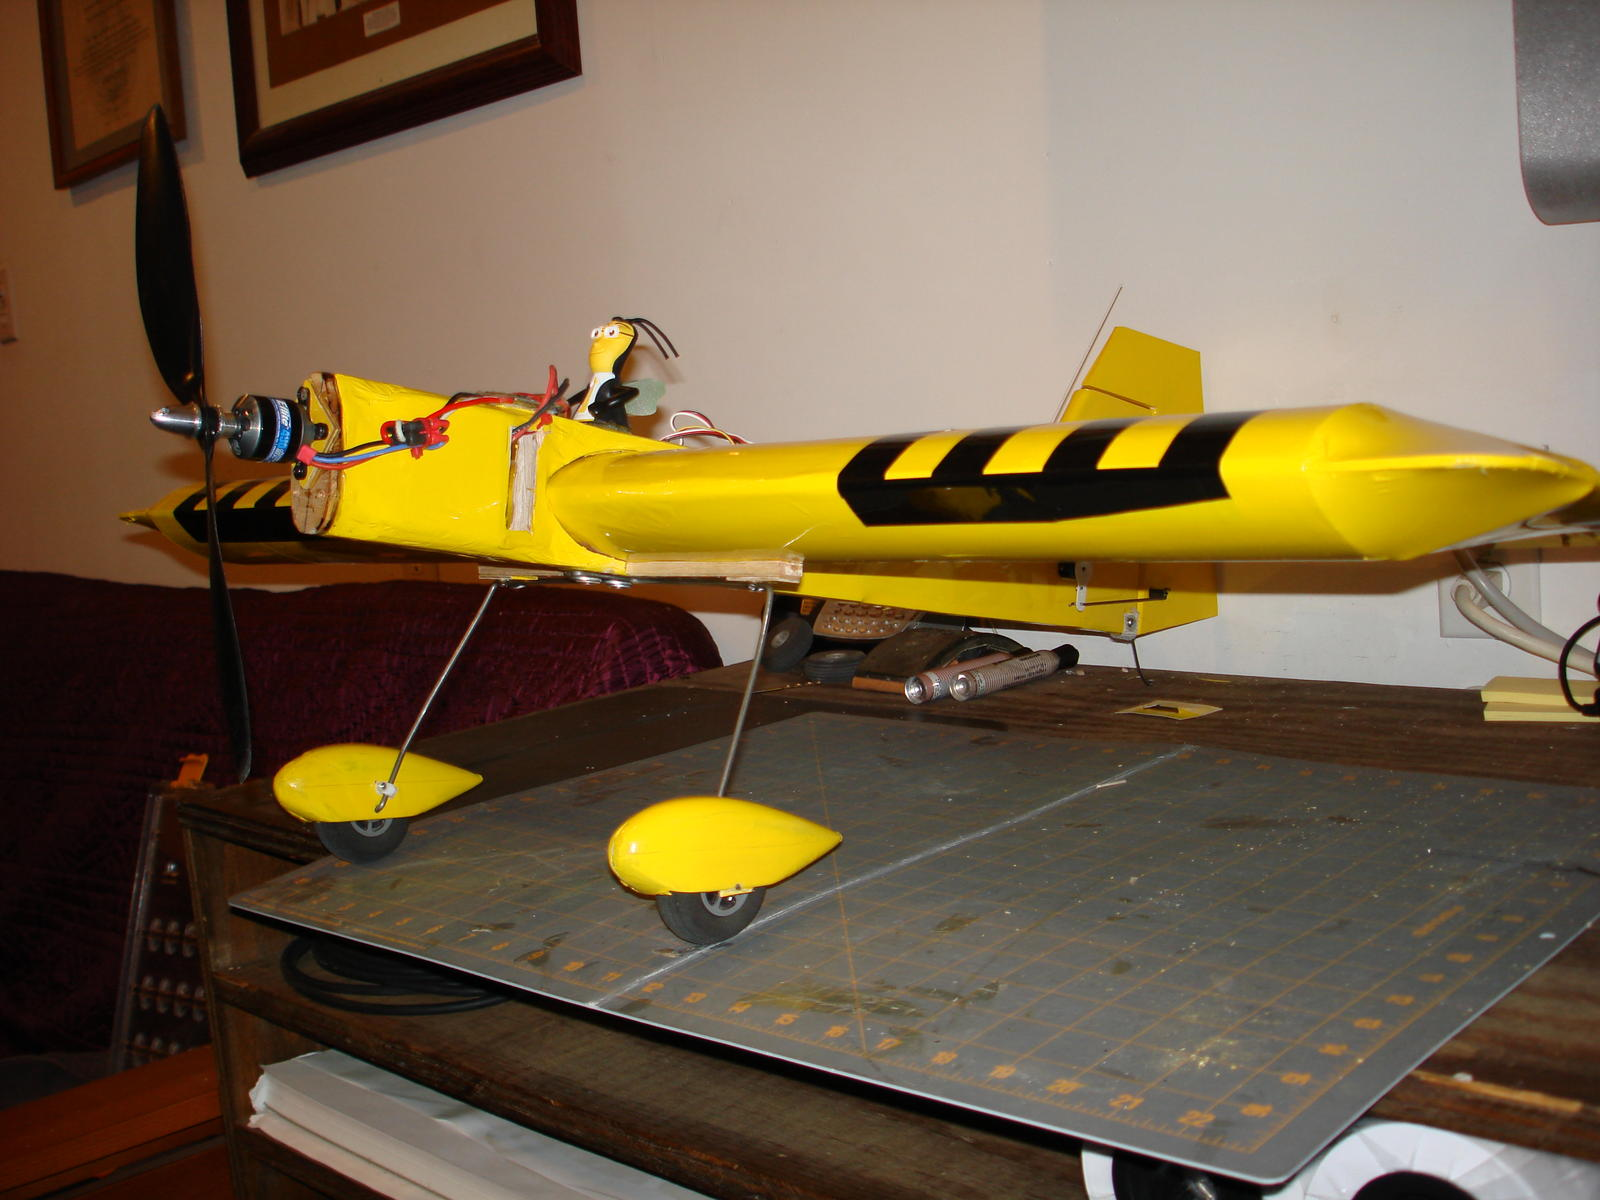 Scratch built design called the BEE